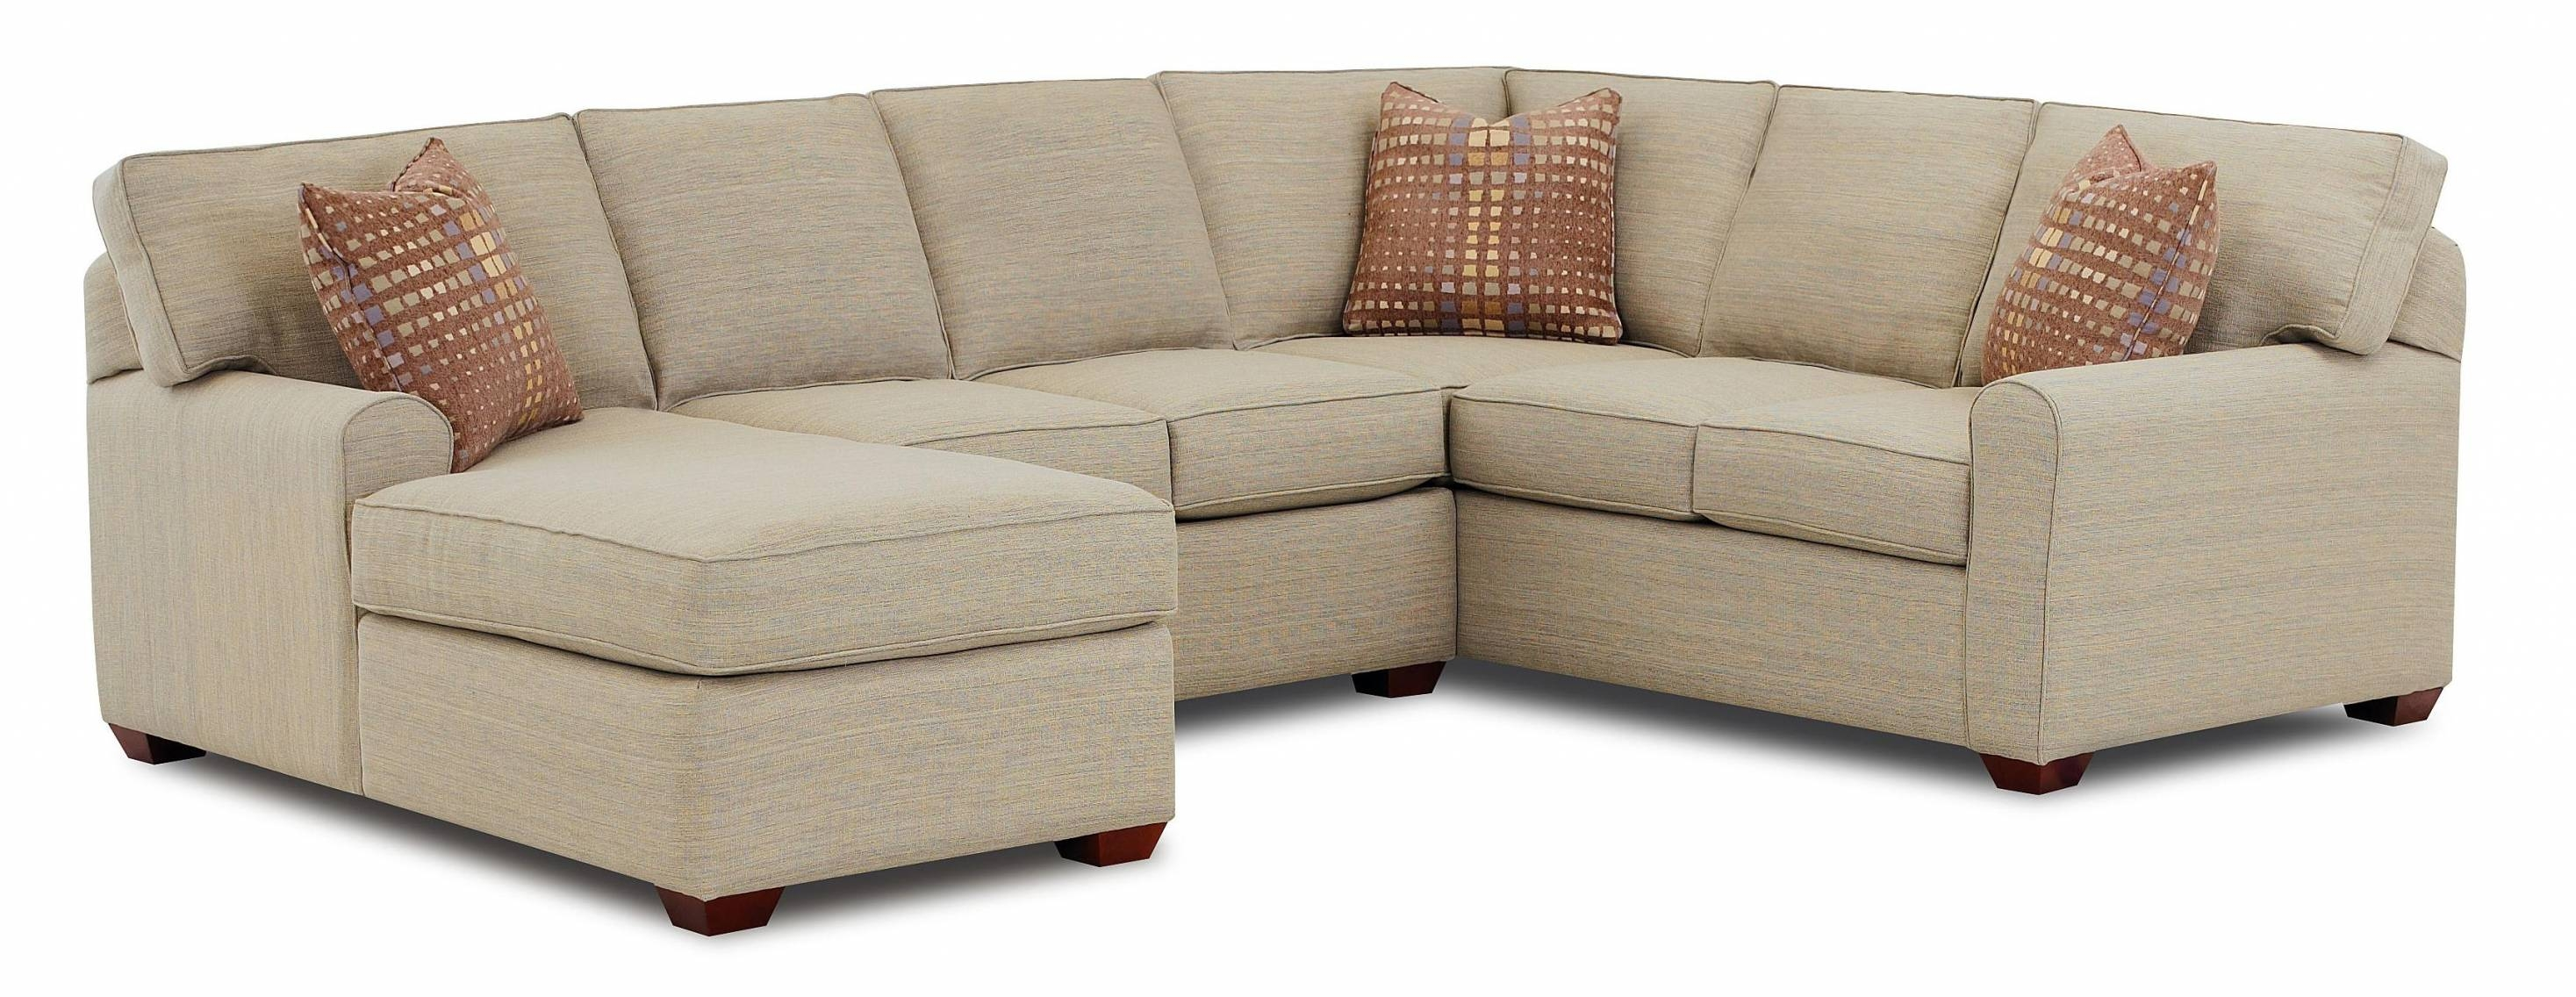 Berkline sectional sofa with chaise for Berkline callisburgh sofa chaise